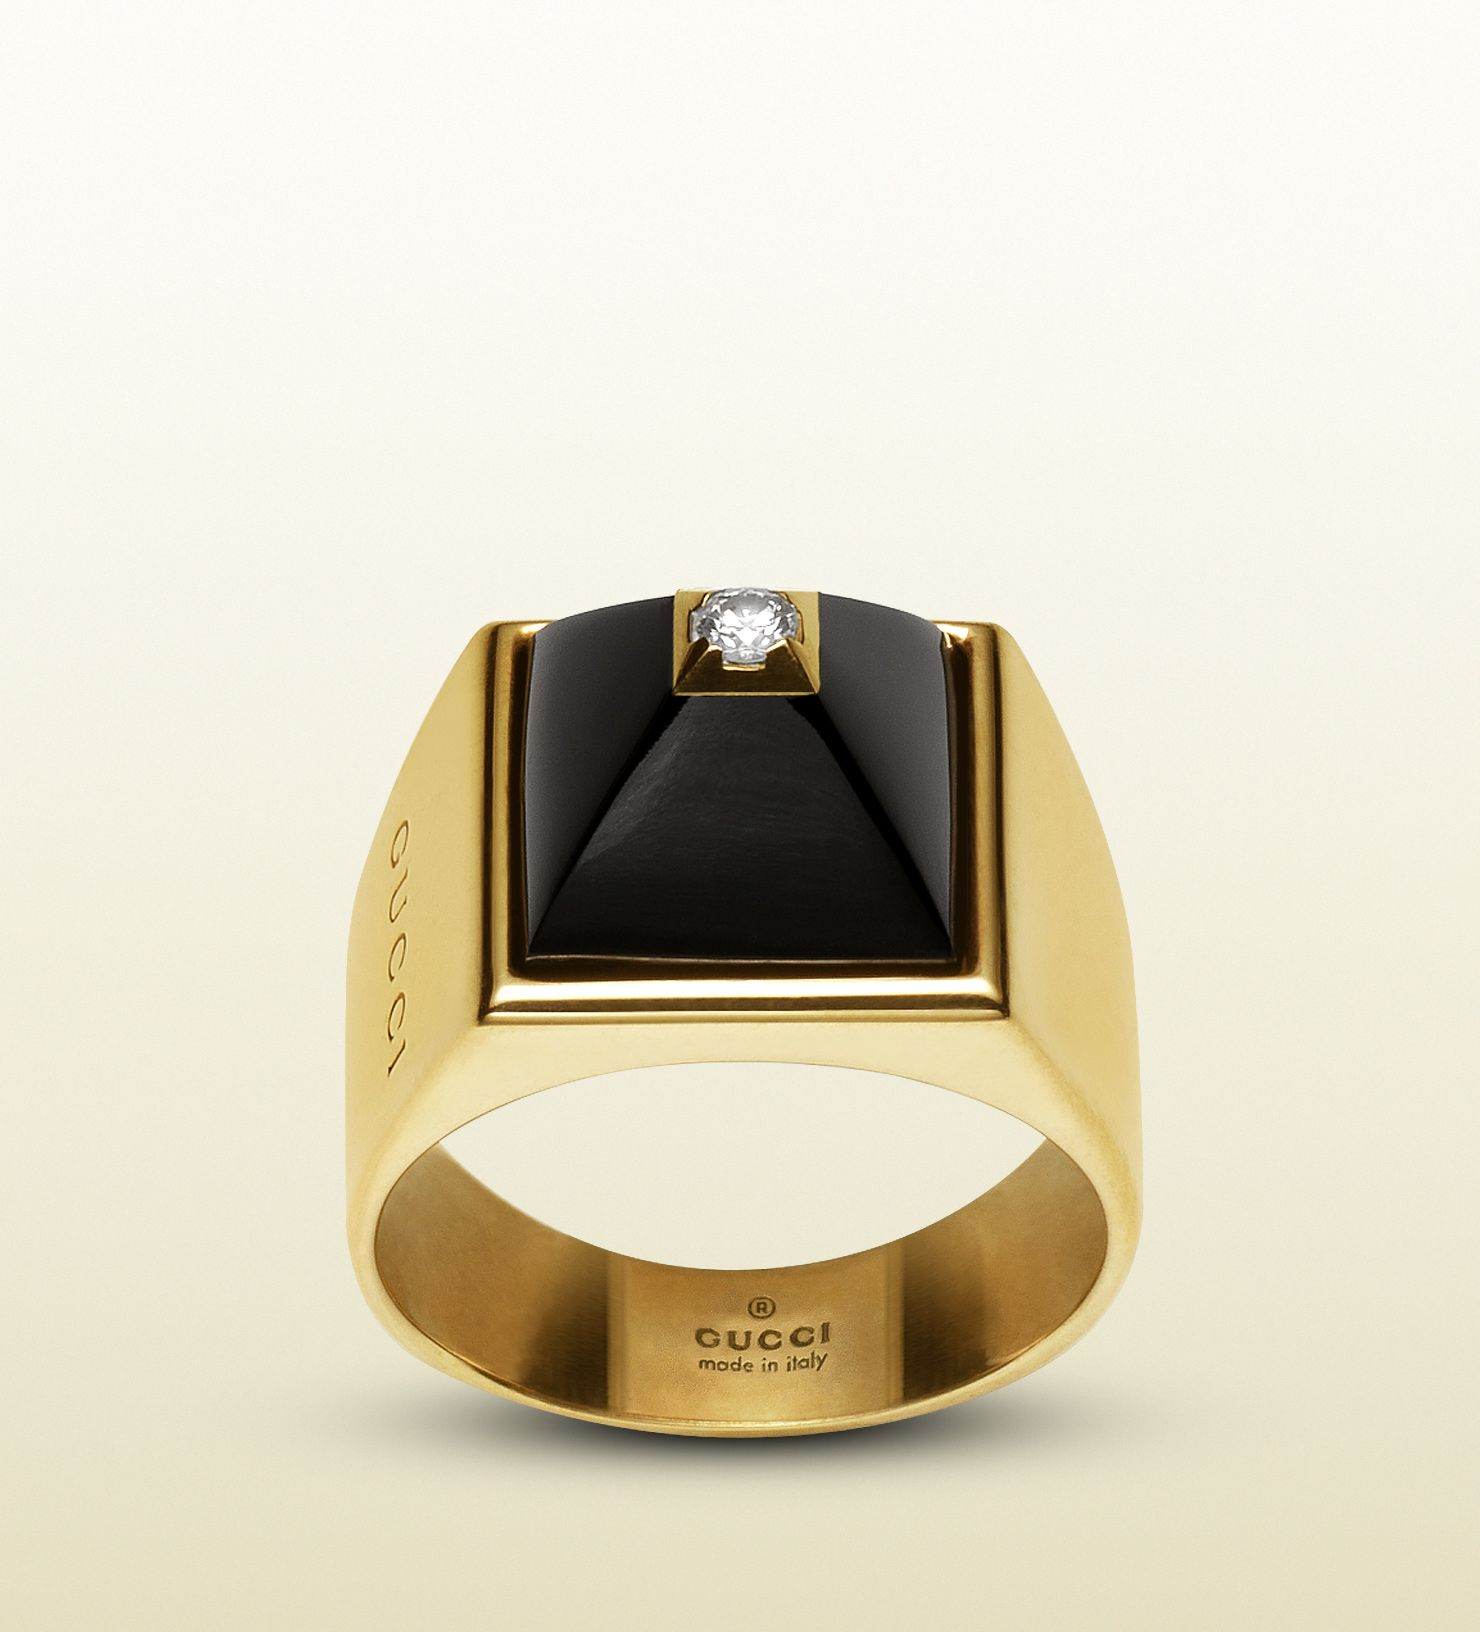 Superb gucci ring in k in yellow gold diamonds and black chalcedony